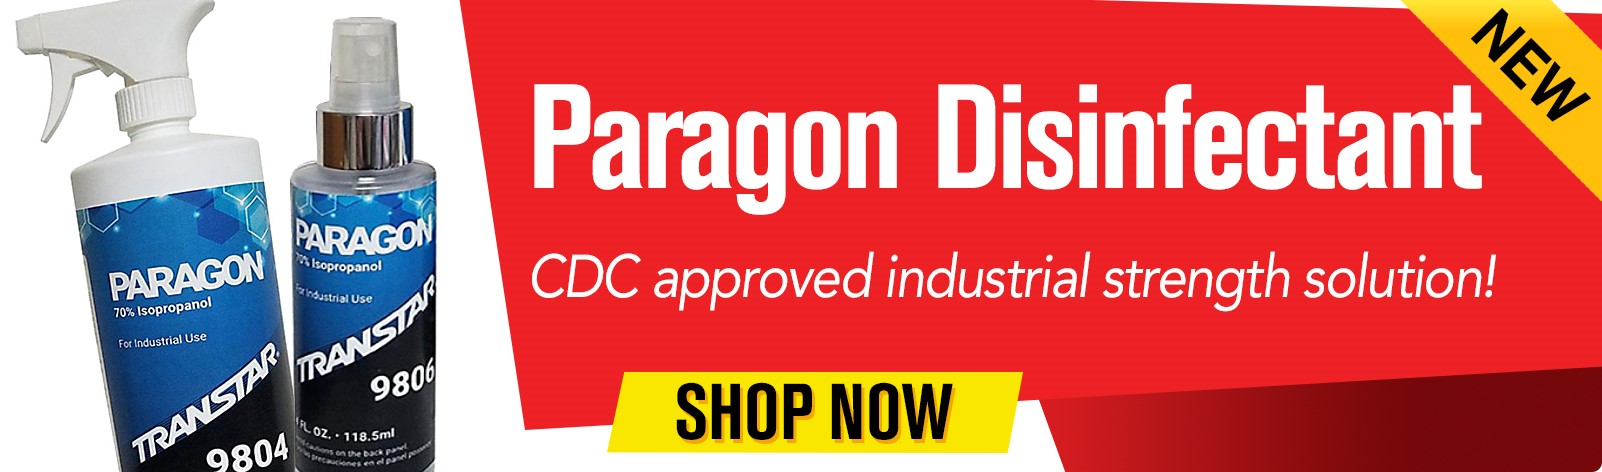 Paragon Disinfectant - CDC approved industrial strenght solution!